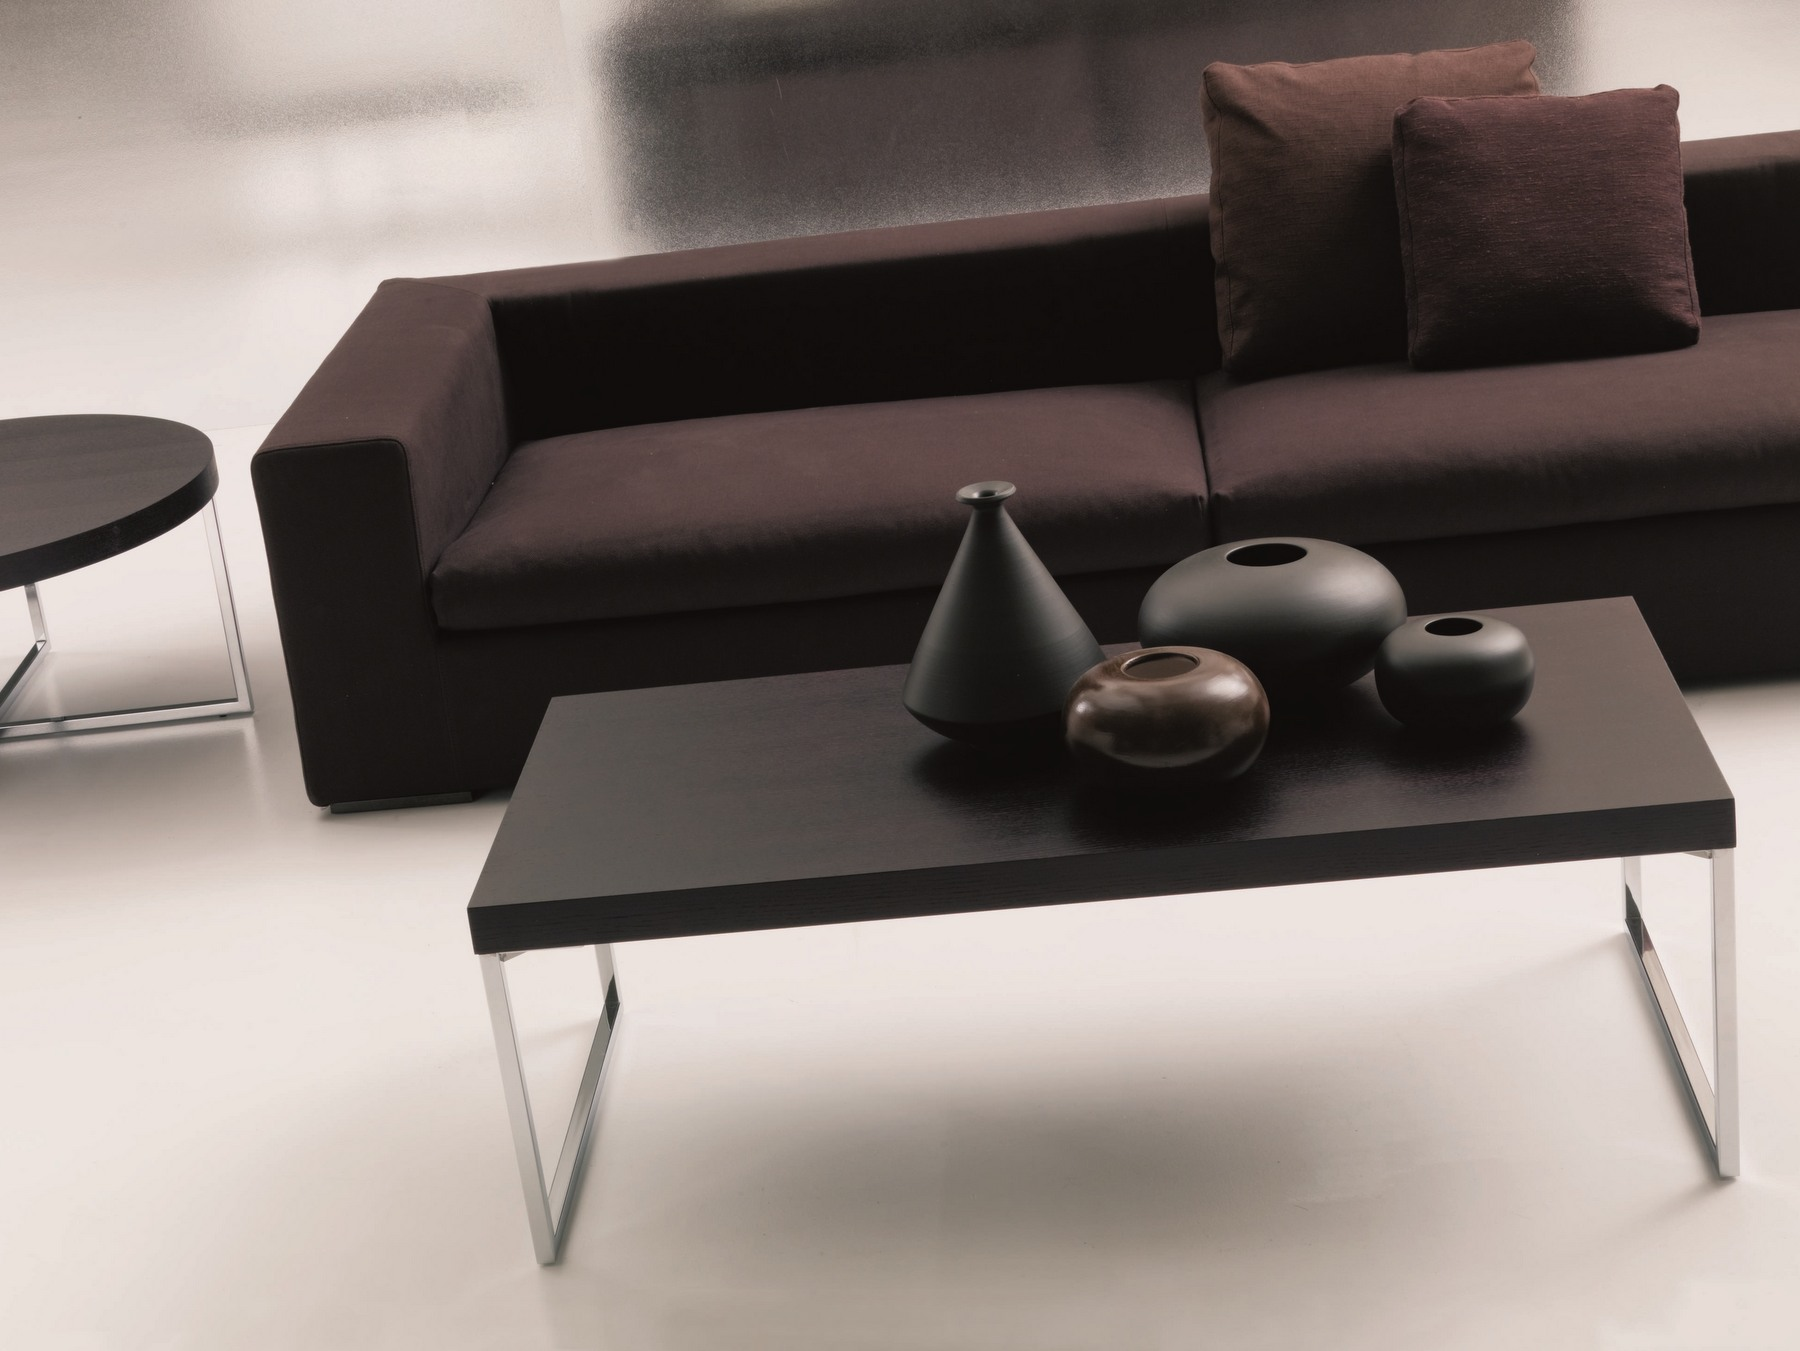 Low coffee table for living room LILY By CASAMANIA design Marc Thorpe